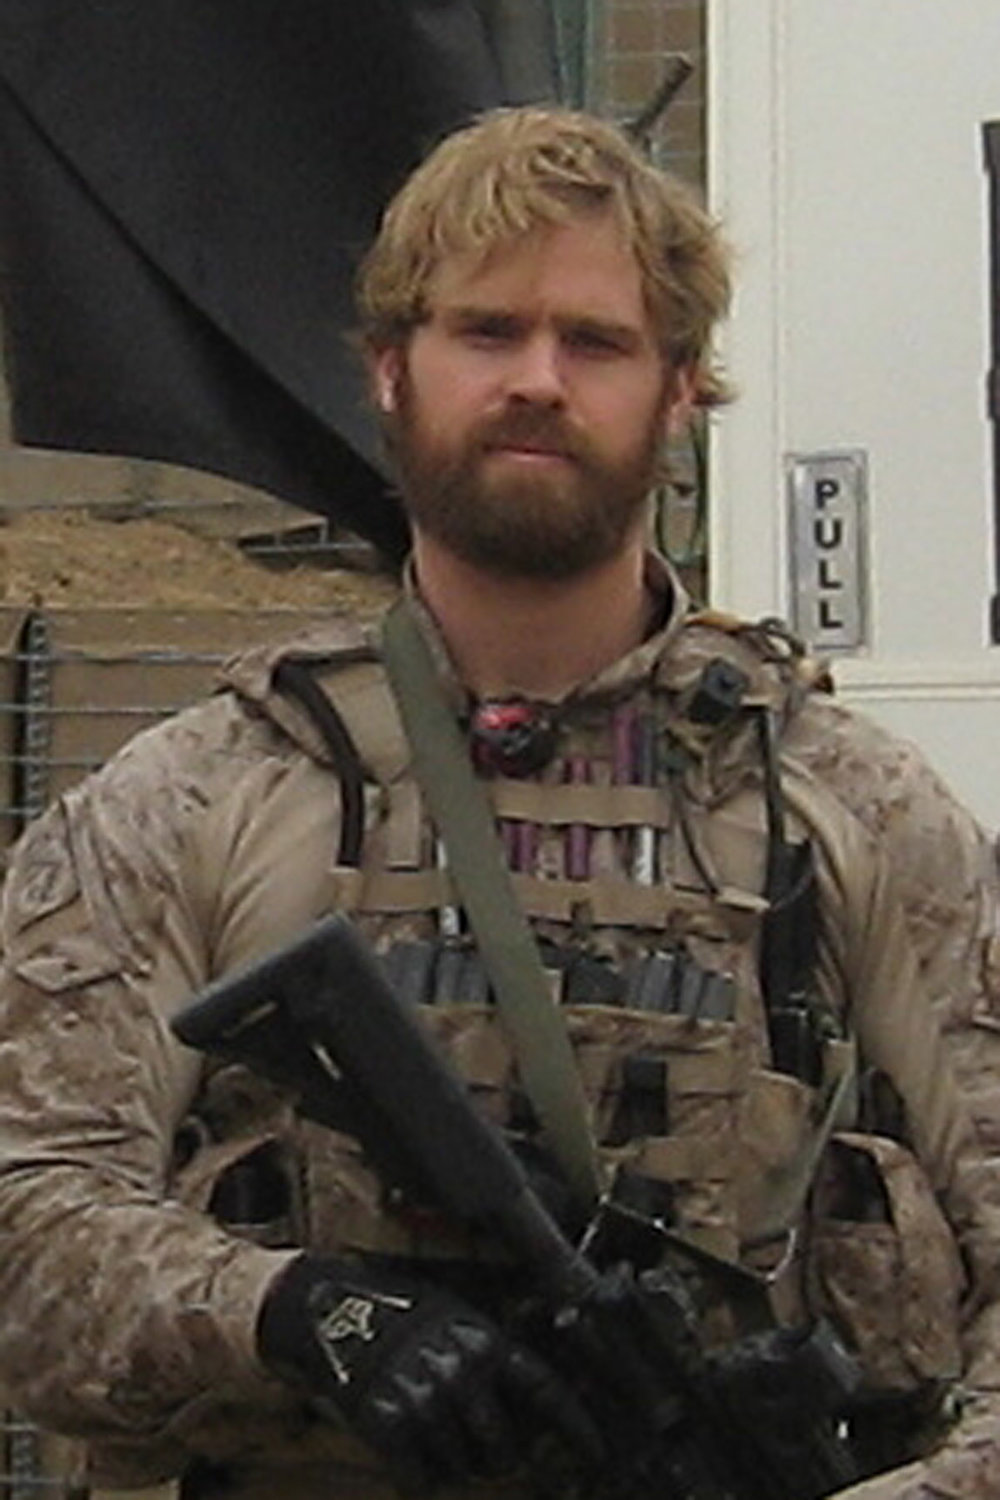 Chief Petty Officer Nate Hardy was killed Sunday February 4th during combat operations in Iraq. Nate is survived by his wife, Mindi, and his infant son Parker.